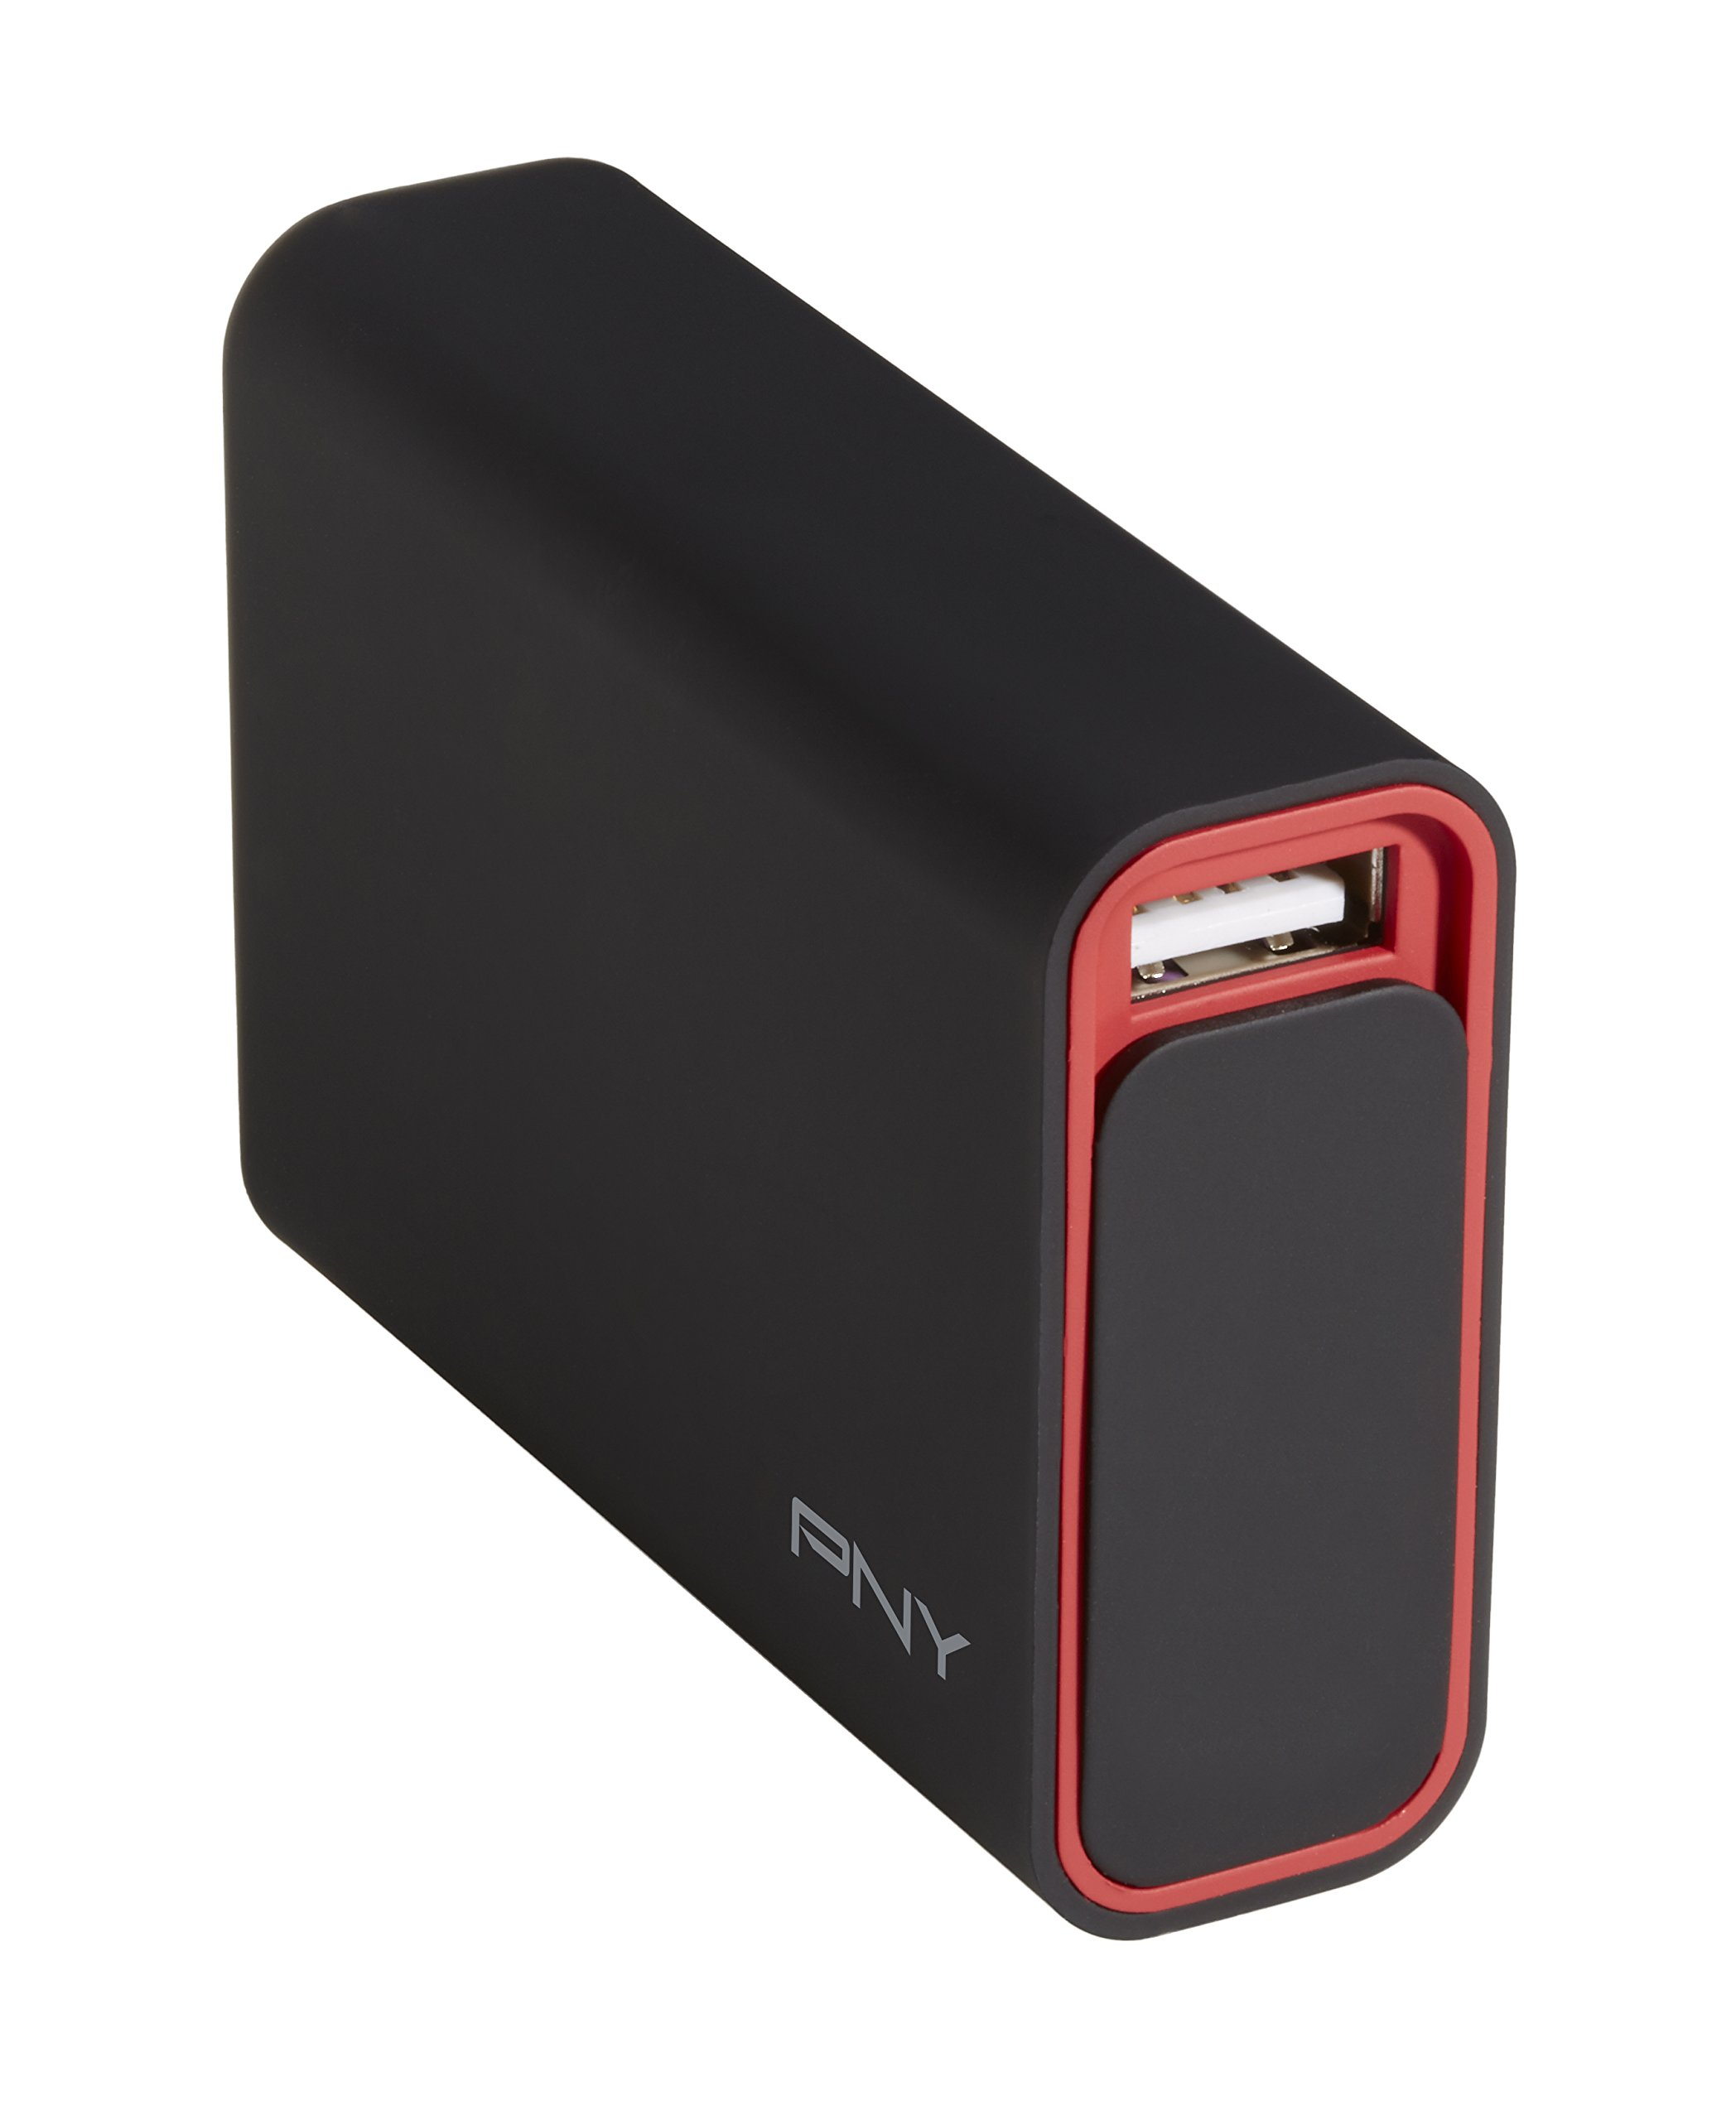 PNY CT5200 5200mAh 1 Amp PowerPack - Universal Portable Rechargeable Battery Charger for Apple iPhone, Samsung Galaxy, Nexus, HTC, Motorola, LG, BlackBerry, and other Android Smartphones by PNY (Image #2)